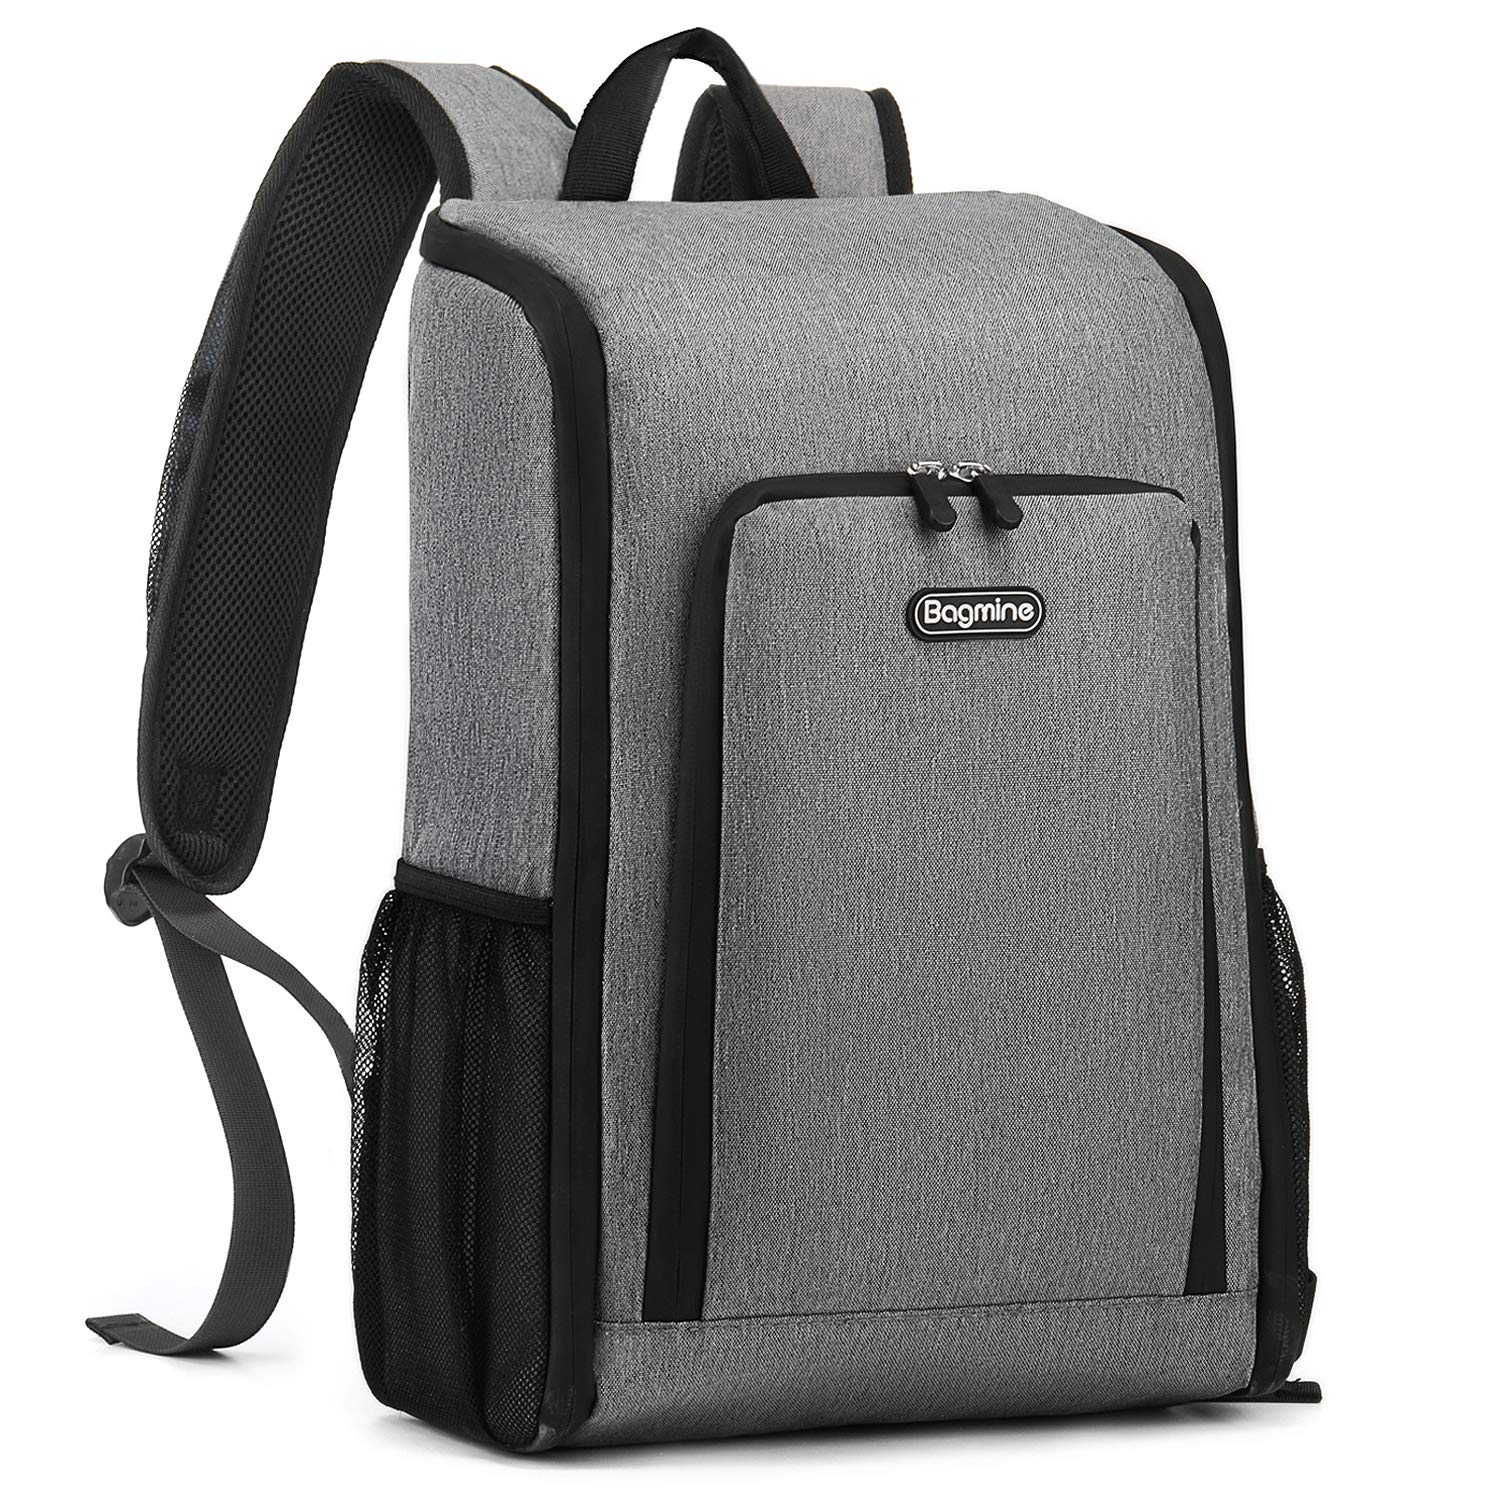 Insulated Cooler Backpack, Bagmine  17 Liter Foldable Lunch Backpack with Cooler, Lightweight, Waterproof Thermal Cooler Bag for Picnic, Hiking, Beach, Park, Gray